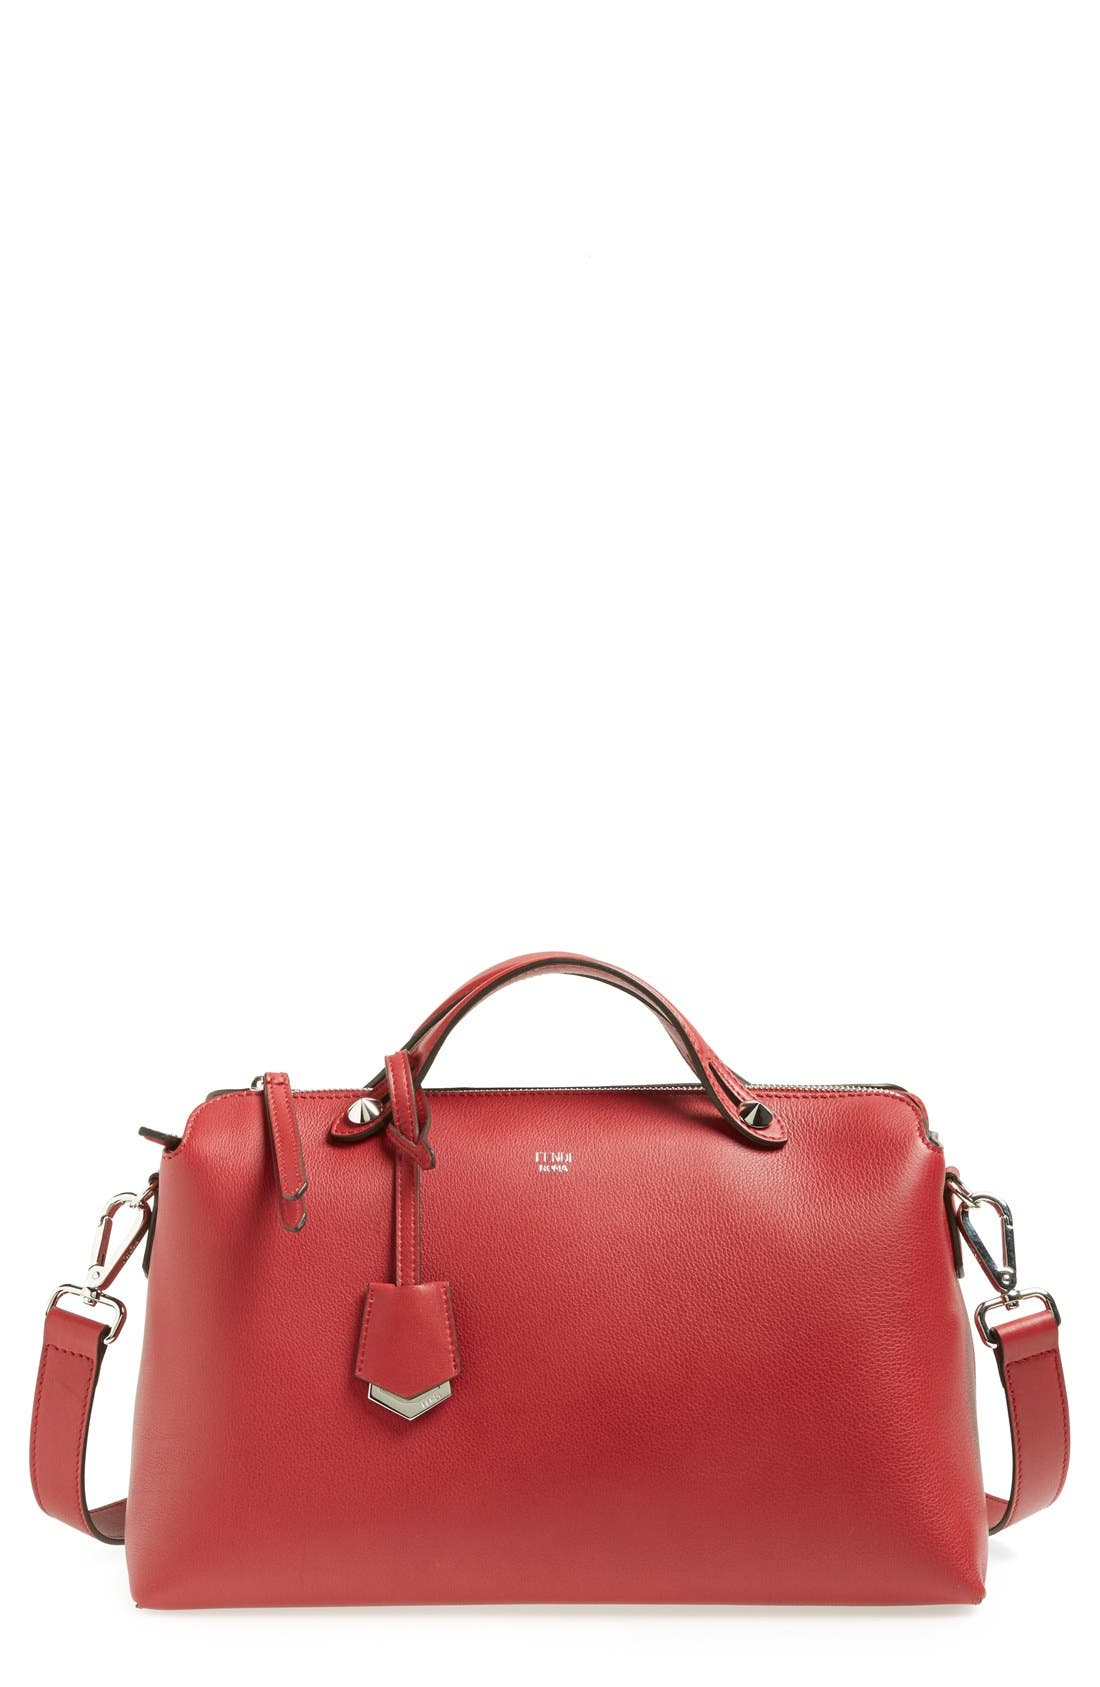 Main Image - Fendi 'Bauletto Grande' Leather Shoulder Bag